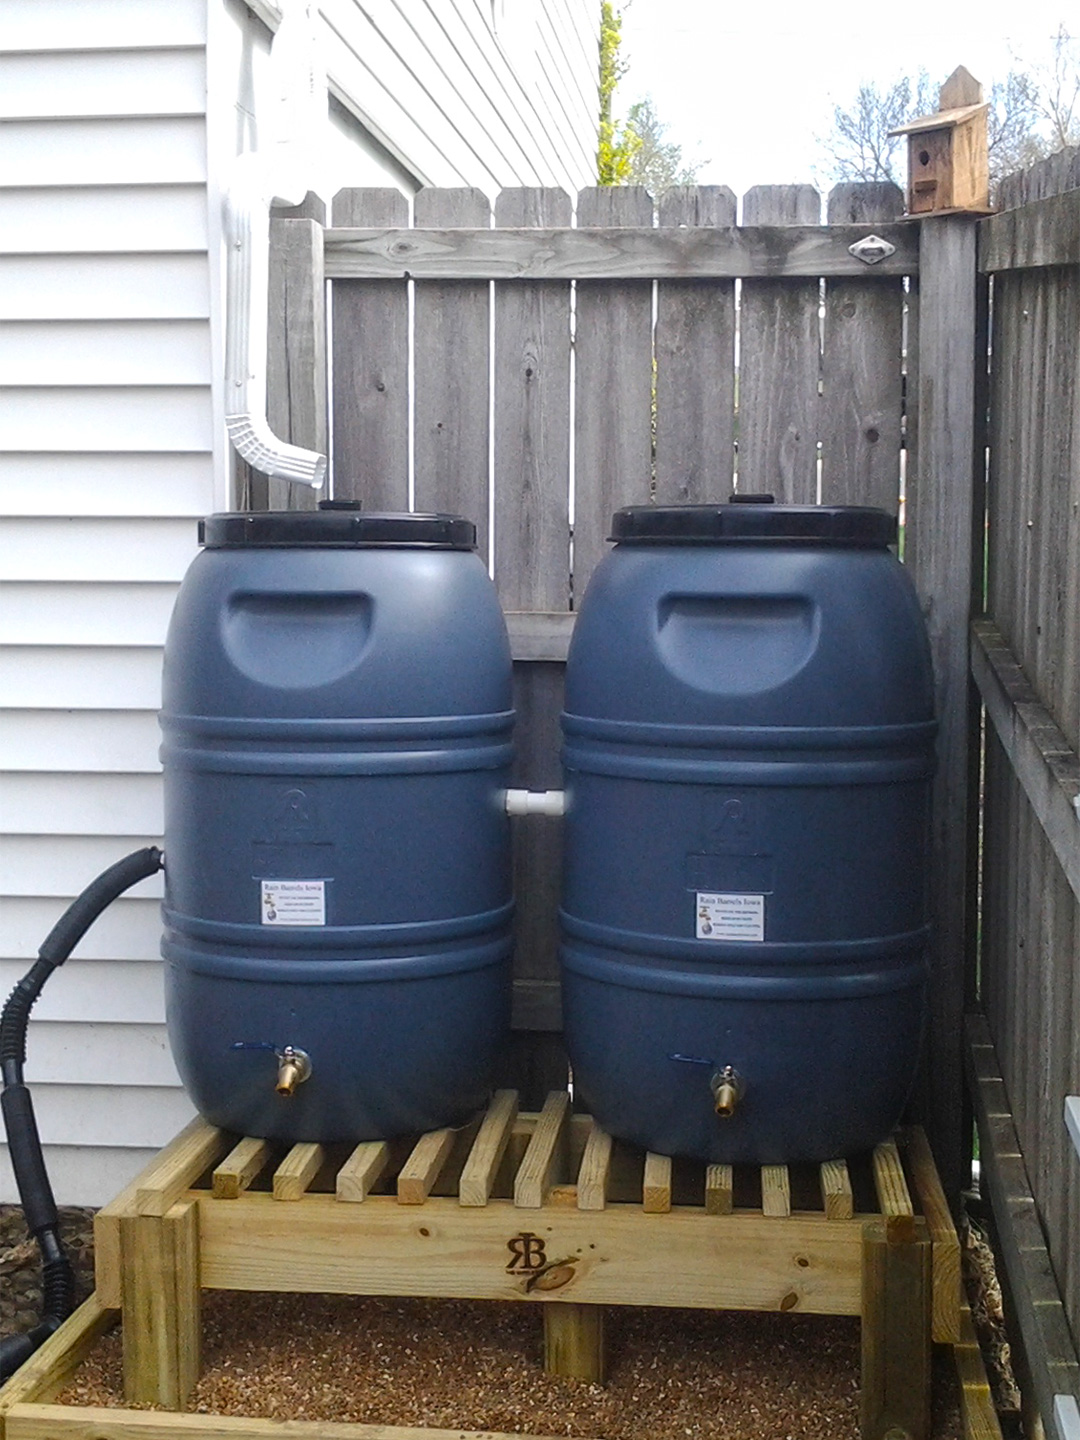 Rain water is free. It is naturally soft. It has not been processed by the local utility for drinking, which requires energy and the addition of chemicals. Rain barrels offer homeowners a chance to capture and use rain water from the roof of the home and or garage.